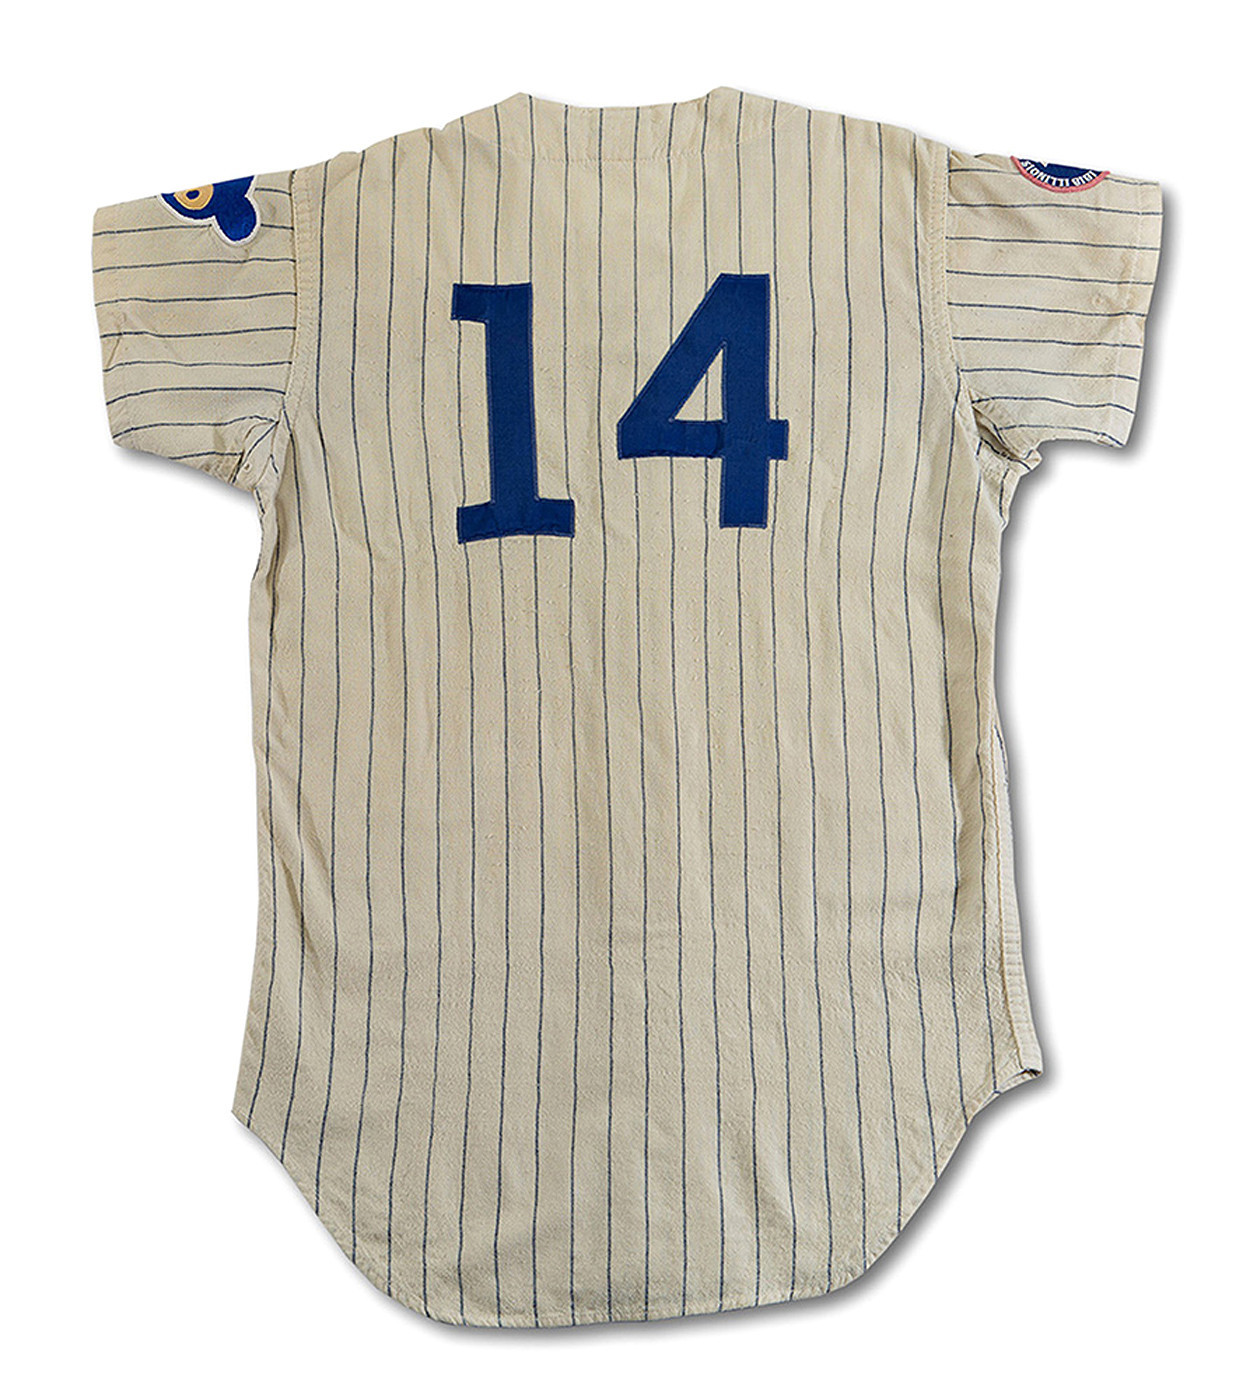 9da75f3ca7b8  68 Ernie Banks jersey could field  150K at Aug. 5 auction - Chicago Tribune